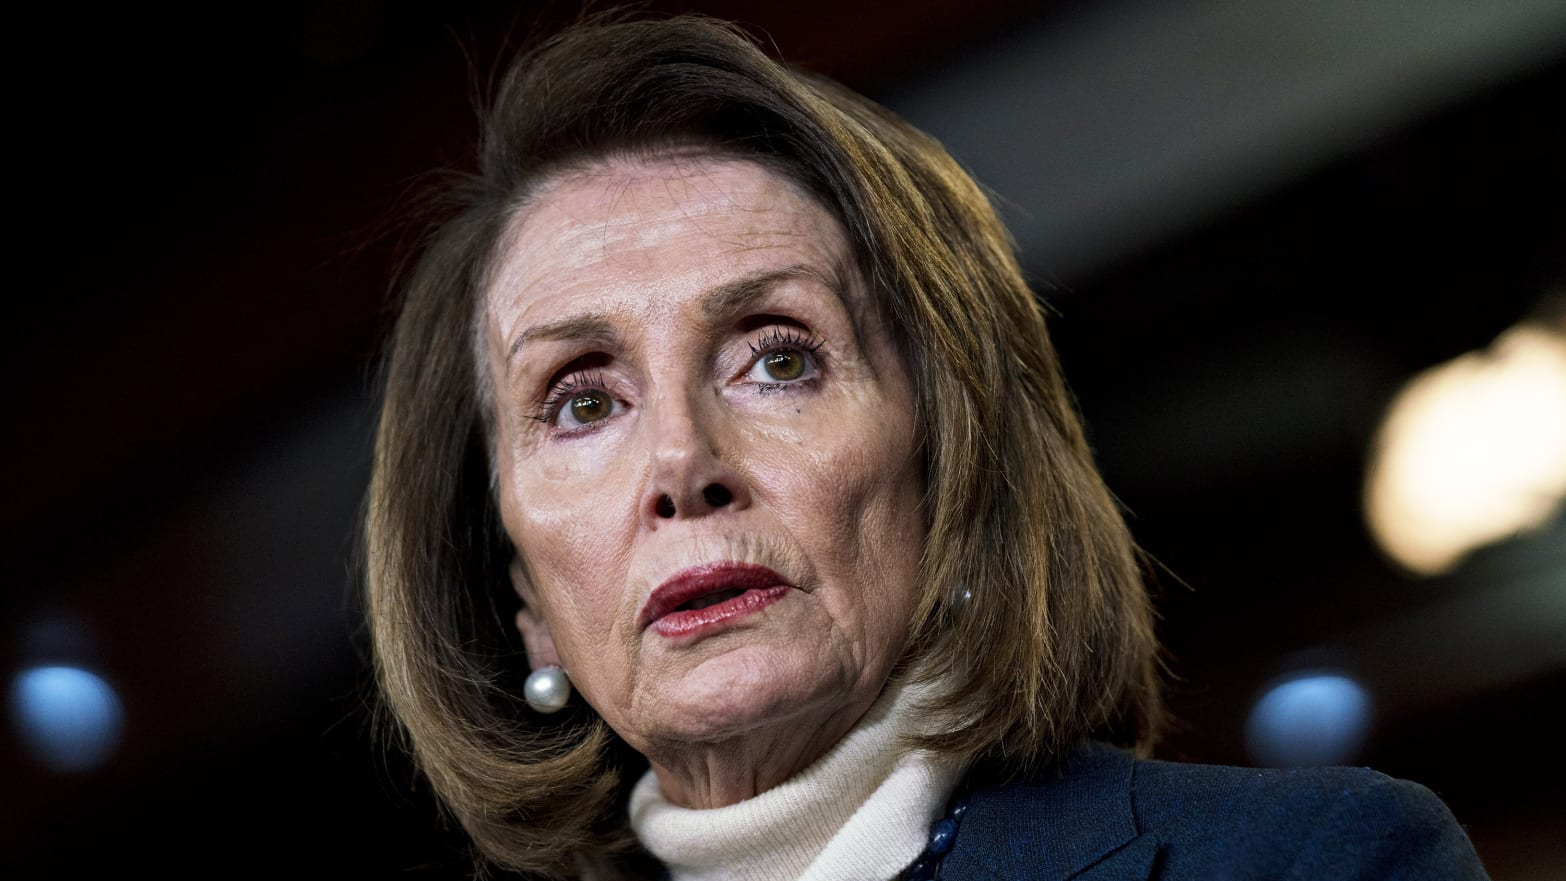 Pelosi Says Trump Leaked Commercial Travel Plans, Forcing Her to Cancel Afghanistan Trip